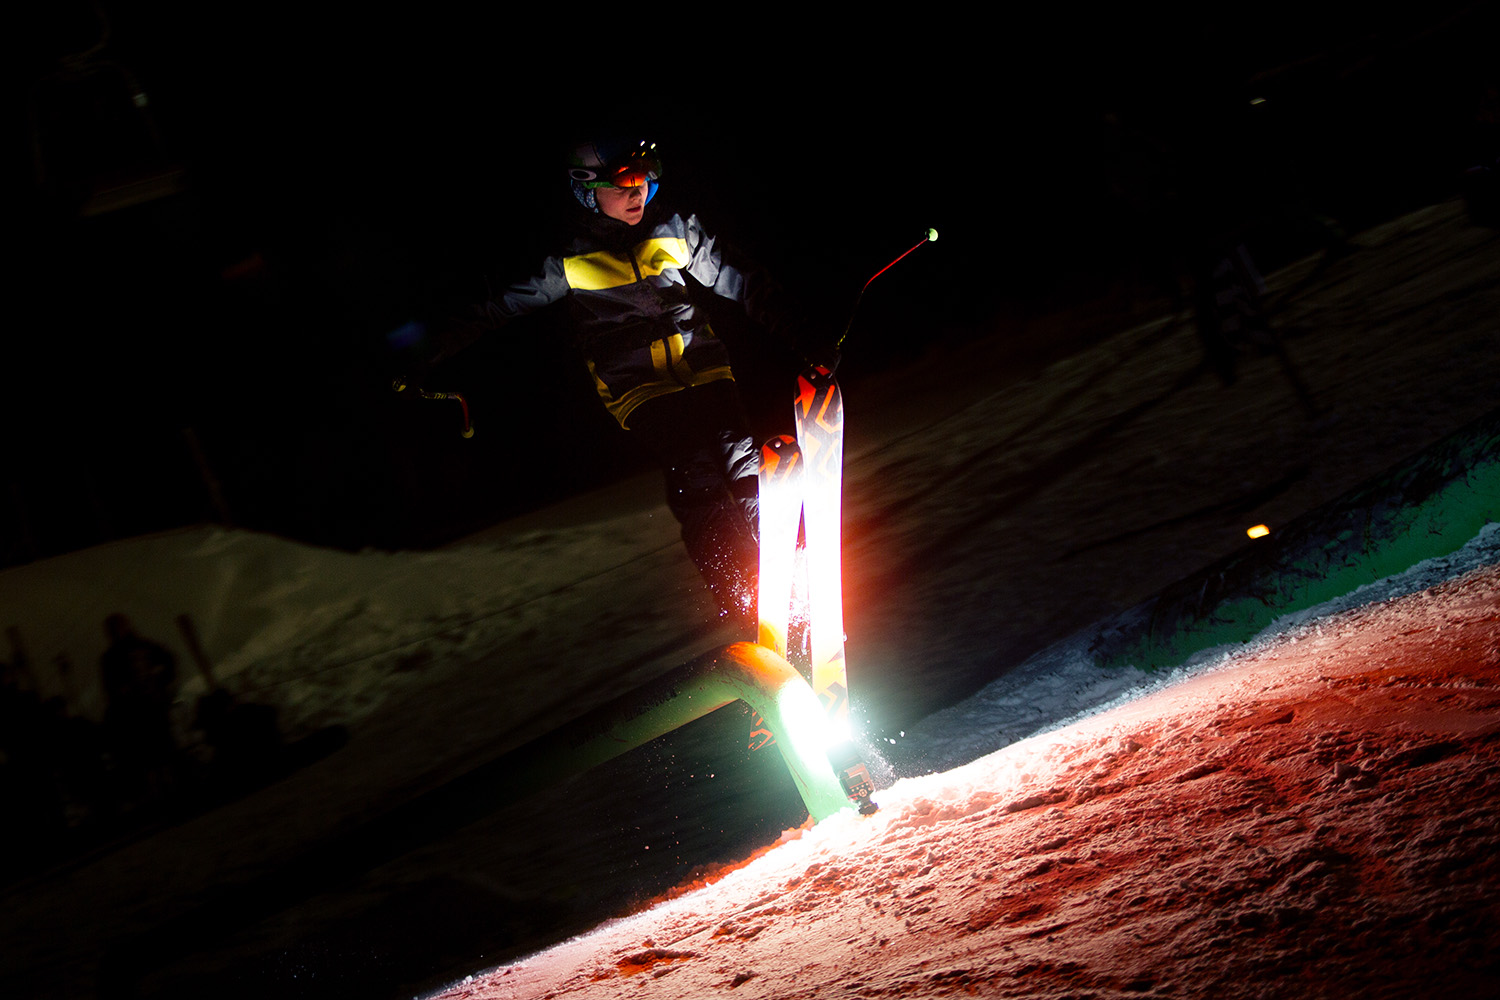 Action im Snowpark Eibenstock – Macheta Rail Jam on Fire